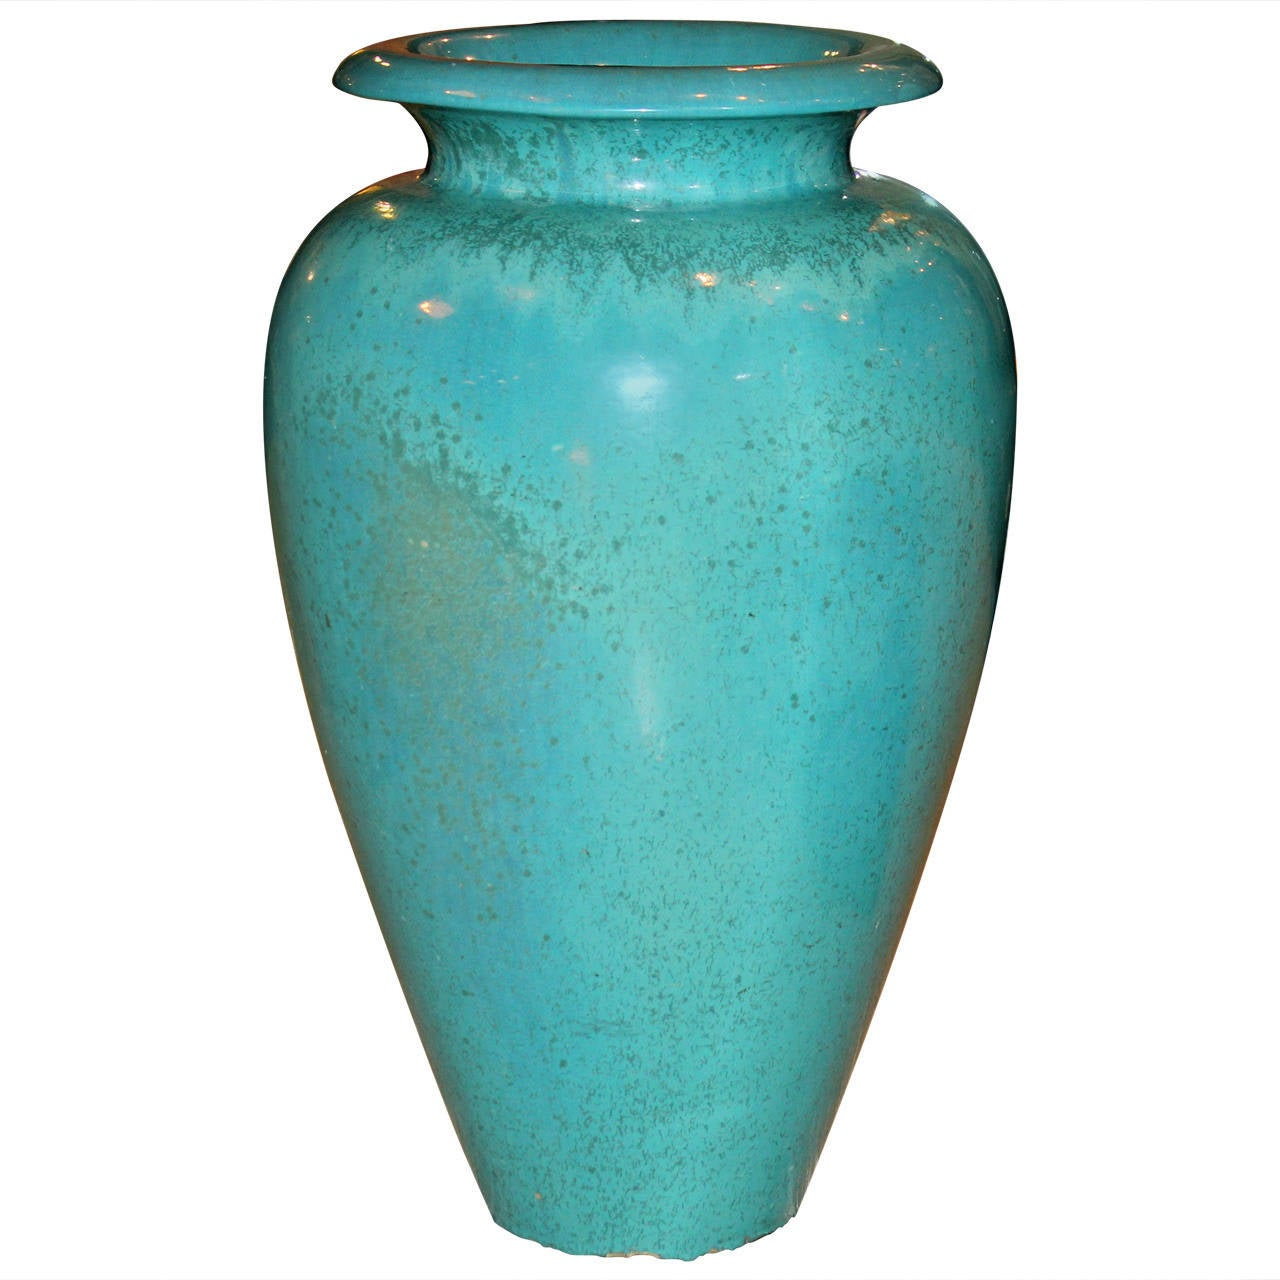 floor vase green with Id F 2149442 on 20 Amazing And Stylish Vase Designs moreover Vase Uk Buy Your Vases And Bowls Online Today House Of Fraser furthermore Tyre Floor L s together with Cocoon Vase Red H 20 5 Cm in addition Living Room Curtain Ideas.